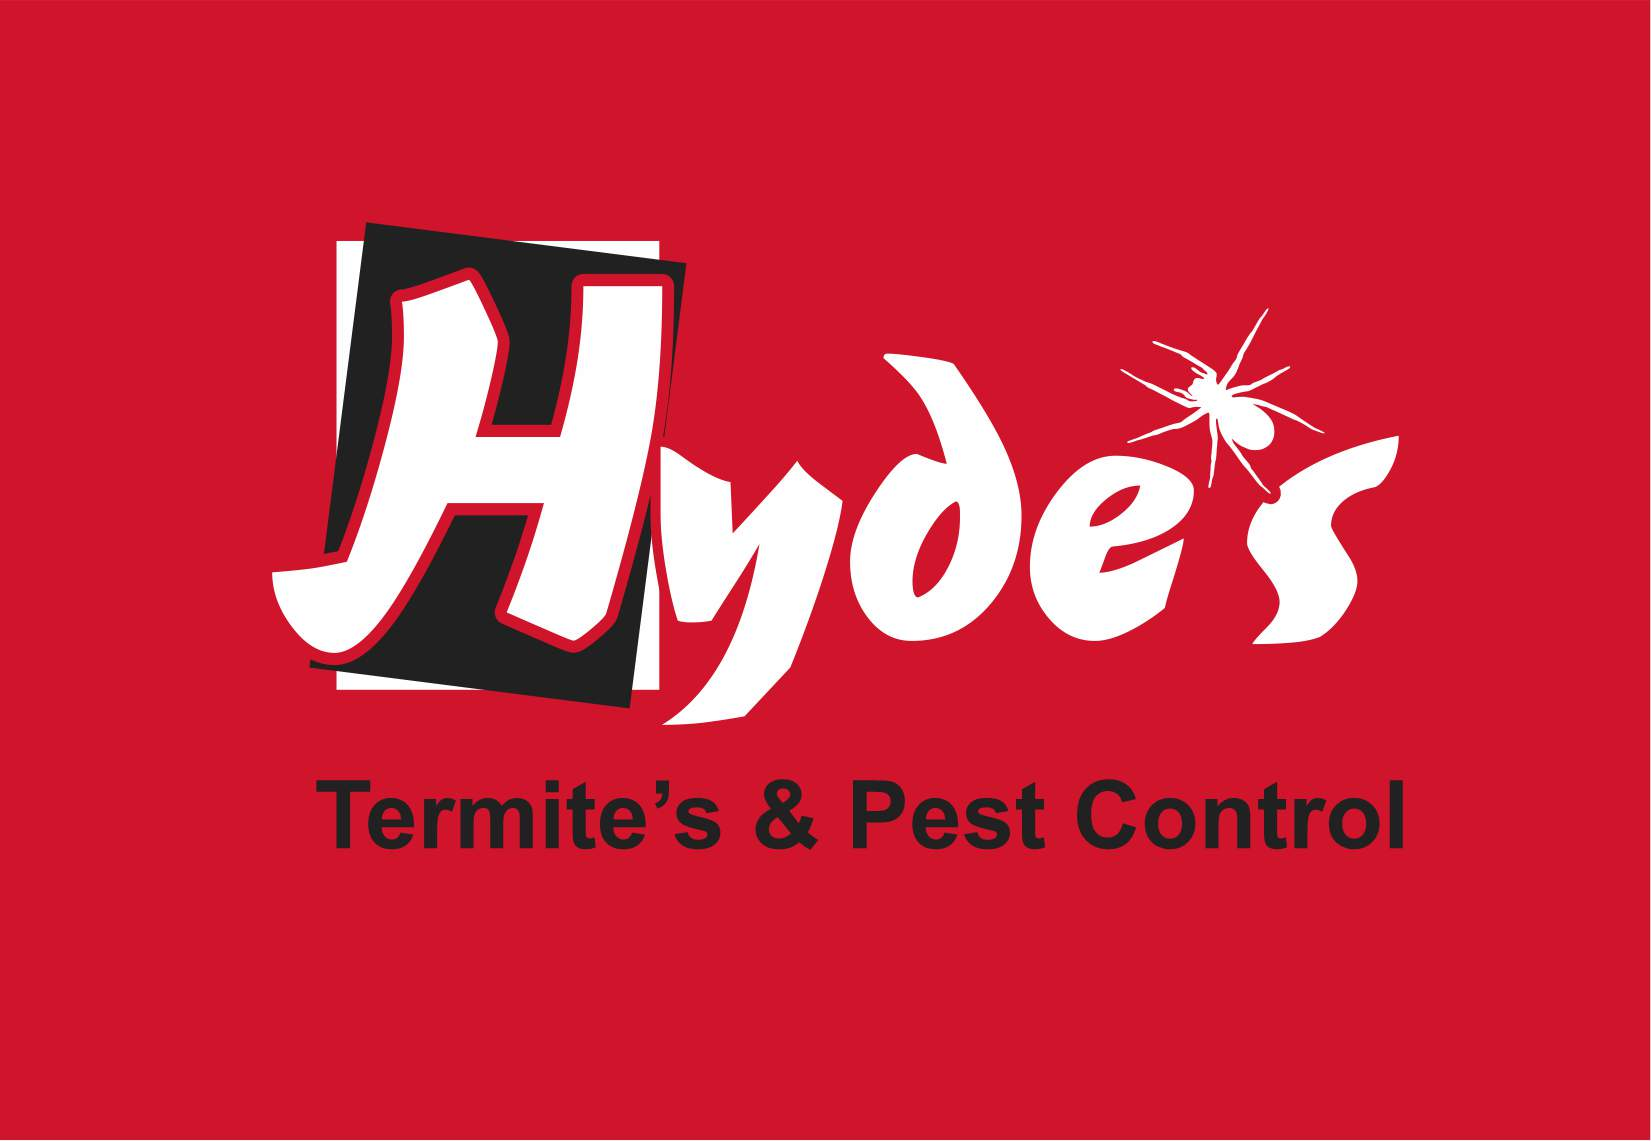 LabelSDS - our clients - Hyde's Termite and Pest Control